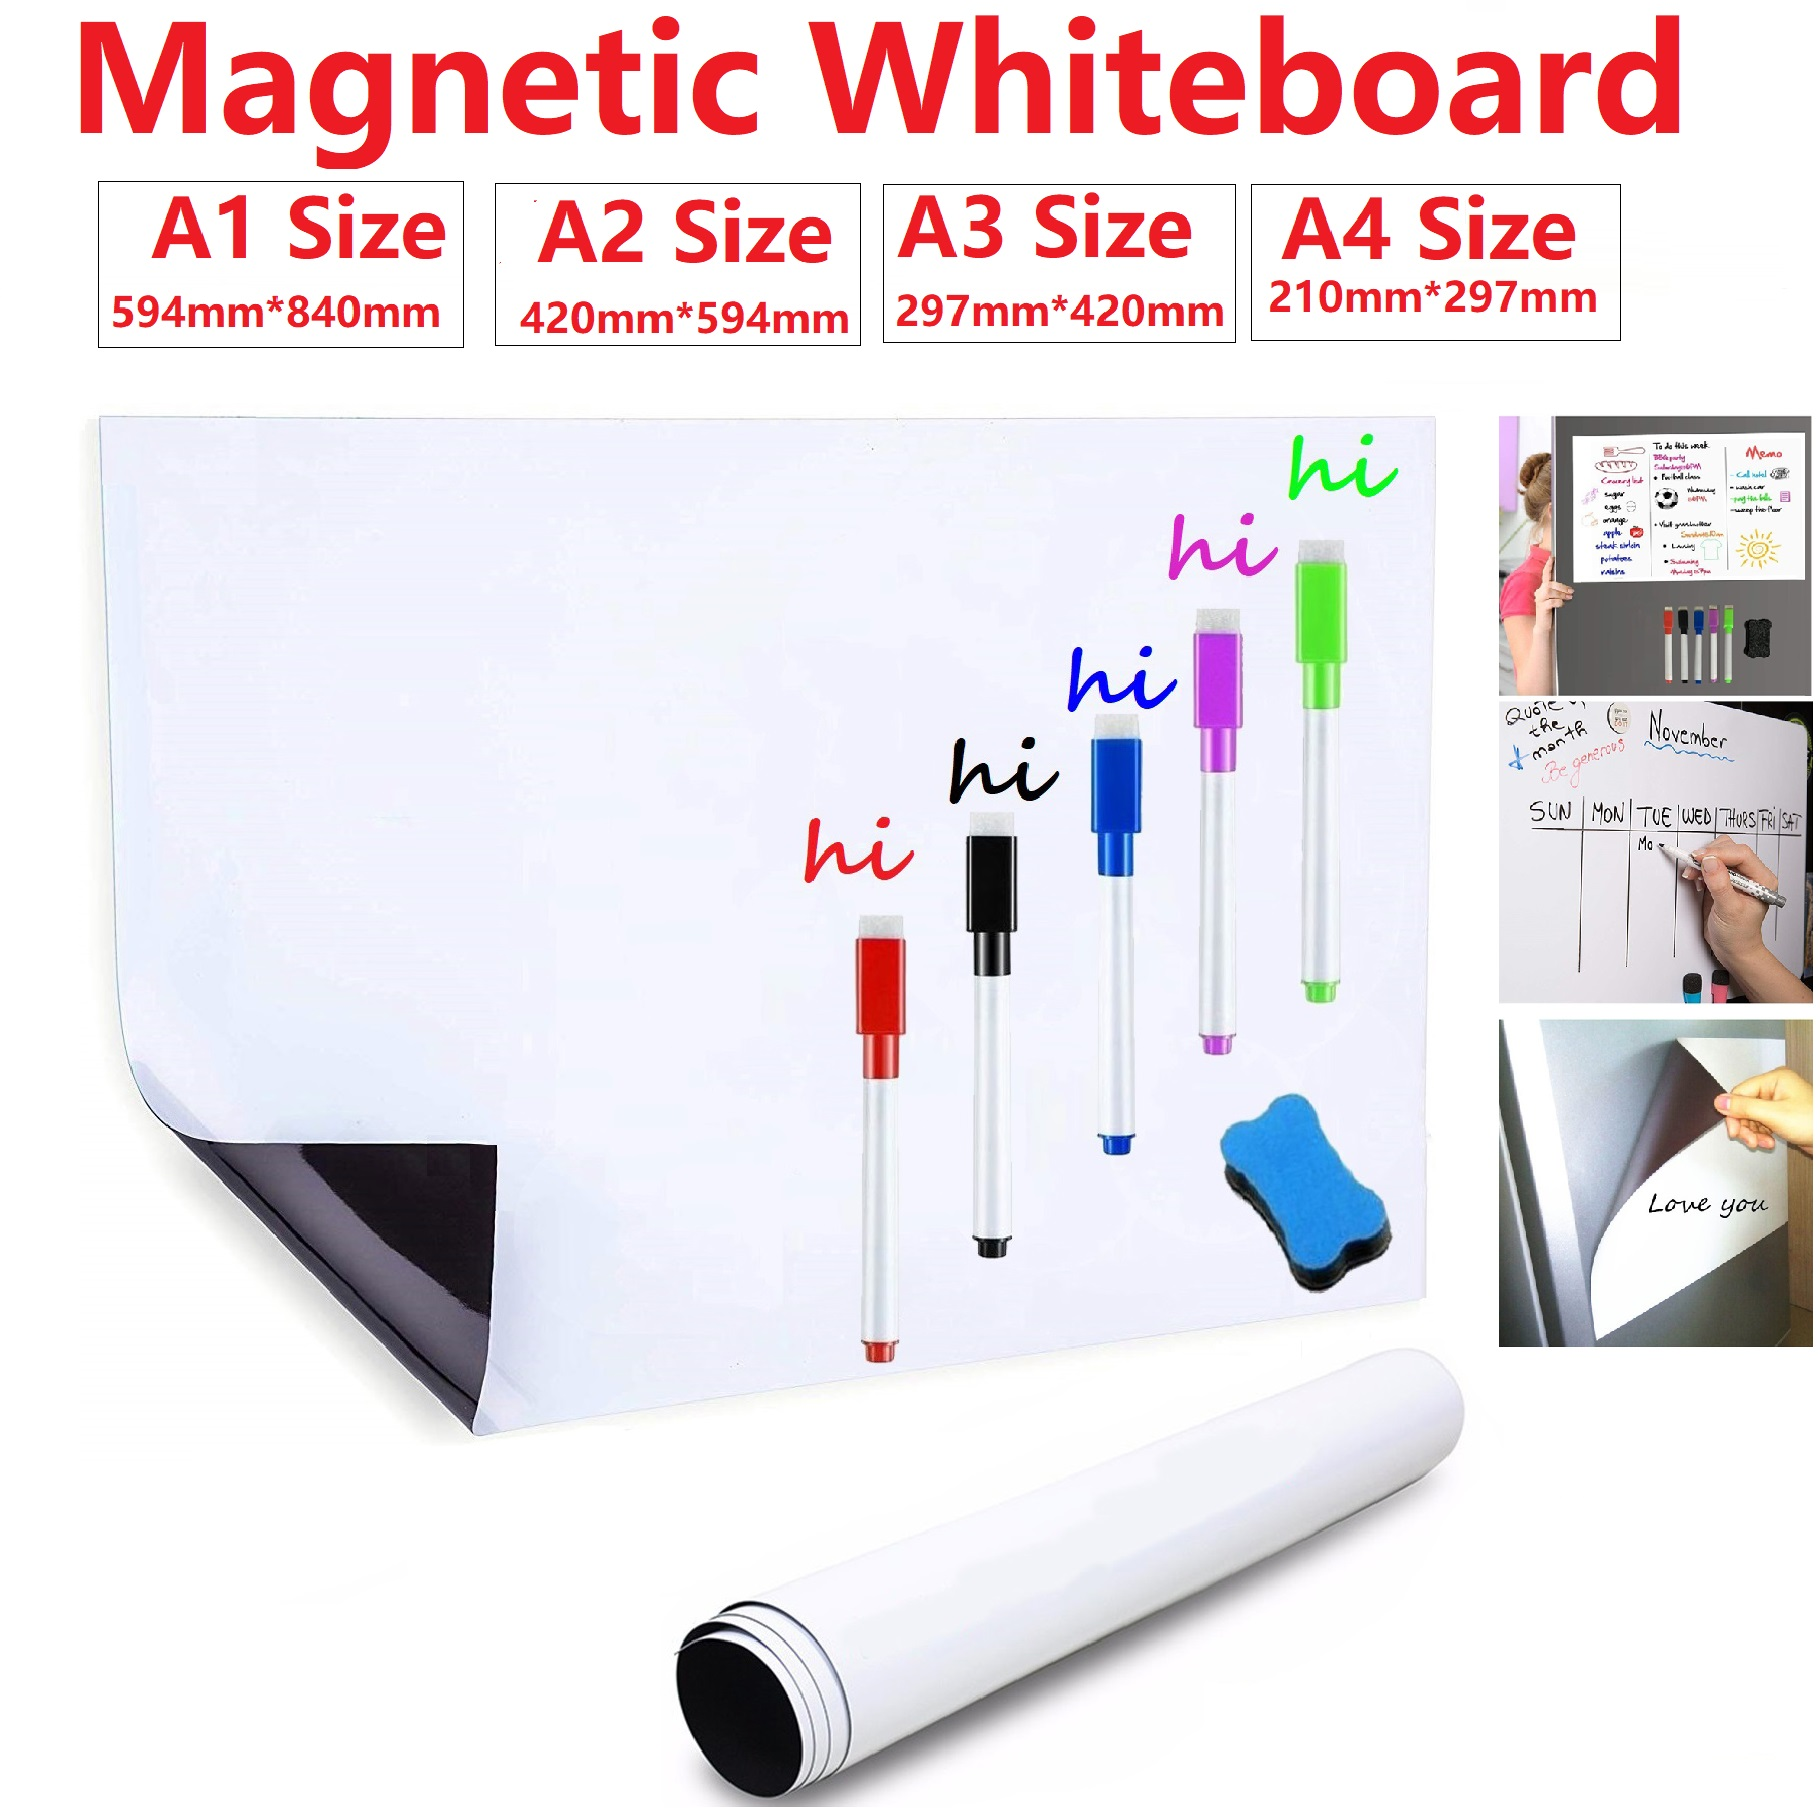 Soft Dry Erase Whiteboard Magnetic White Board For Fridge Magnets White Board Marker Pen Week Month Planner Message Board School